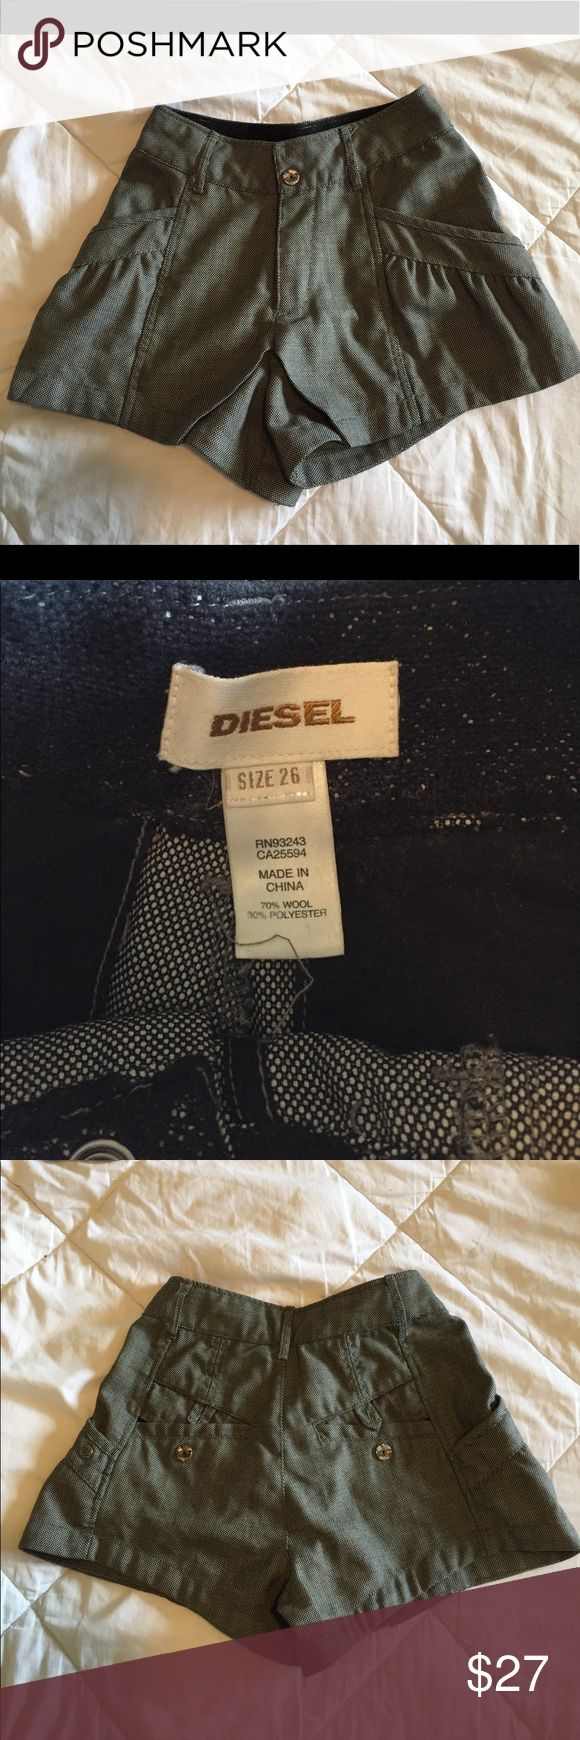 DIESEL SHORTS Worn once; I'm a 24/25 waist and they fit me fine Diesel Shorts Cargos